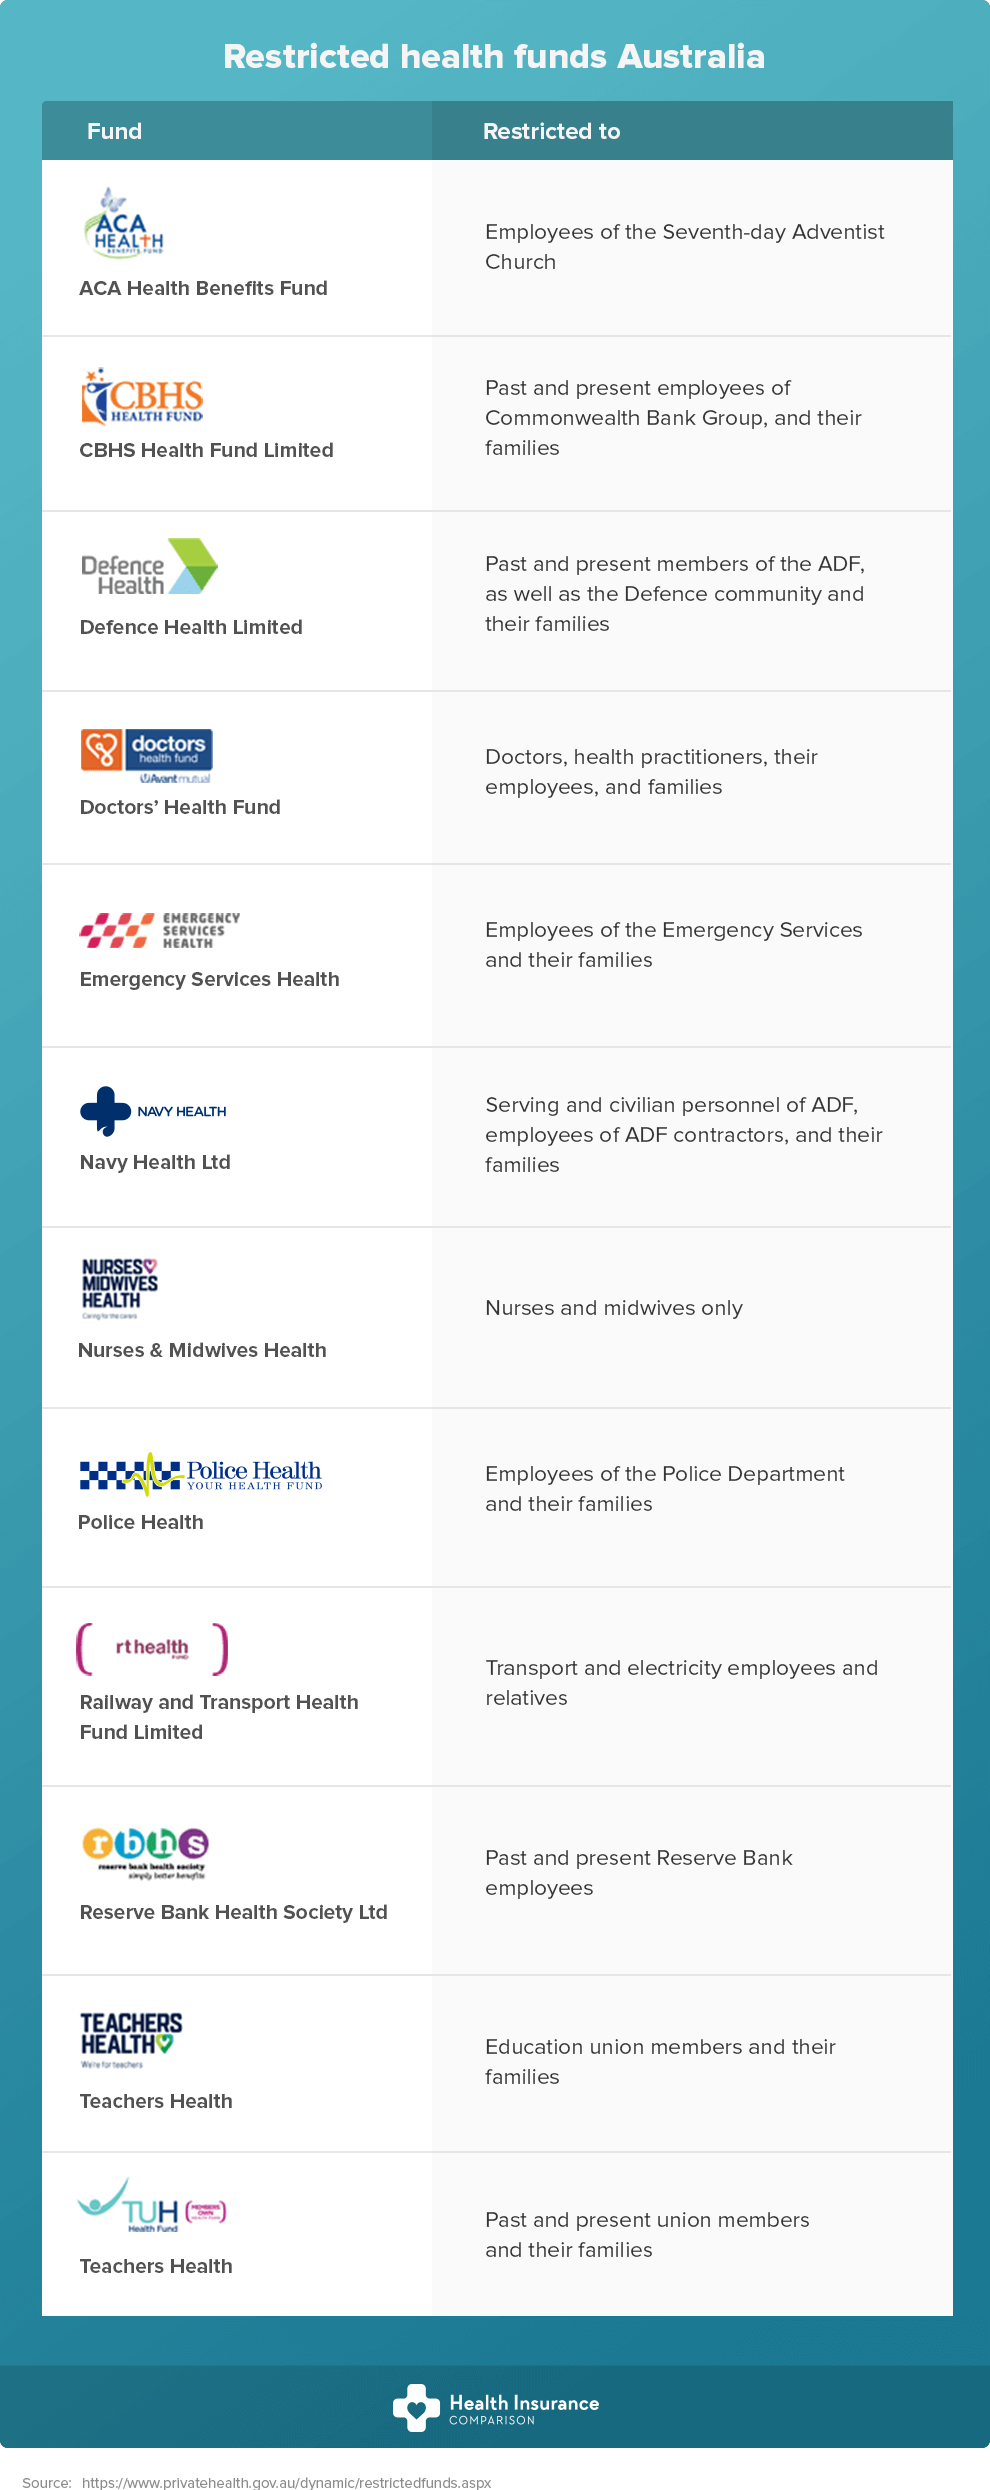 List of restricted health funds in Australia